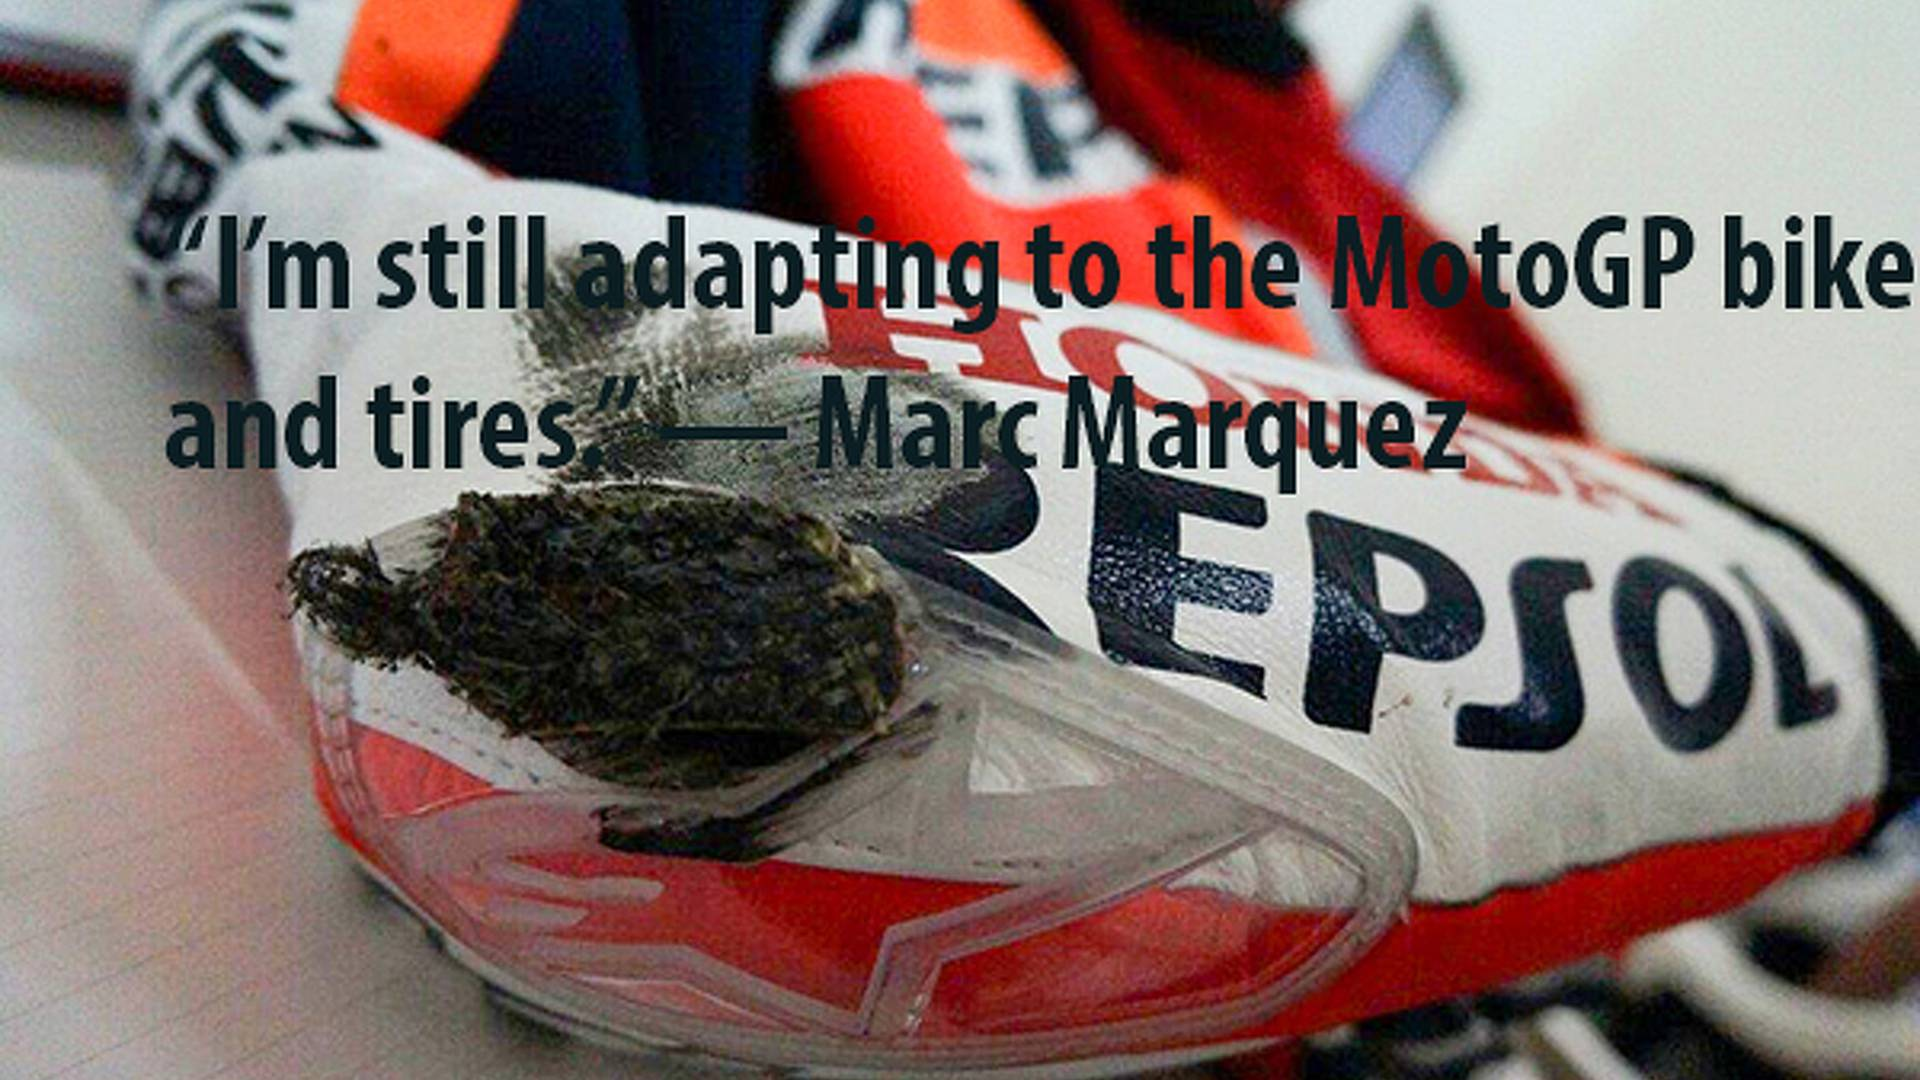 Marc Marquez On Being The 3rd Fastest Rider In Motogp Rideapart Com Photos